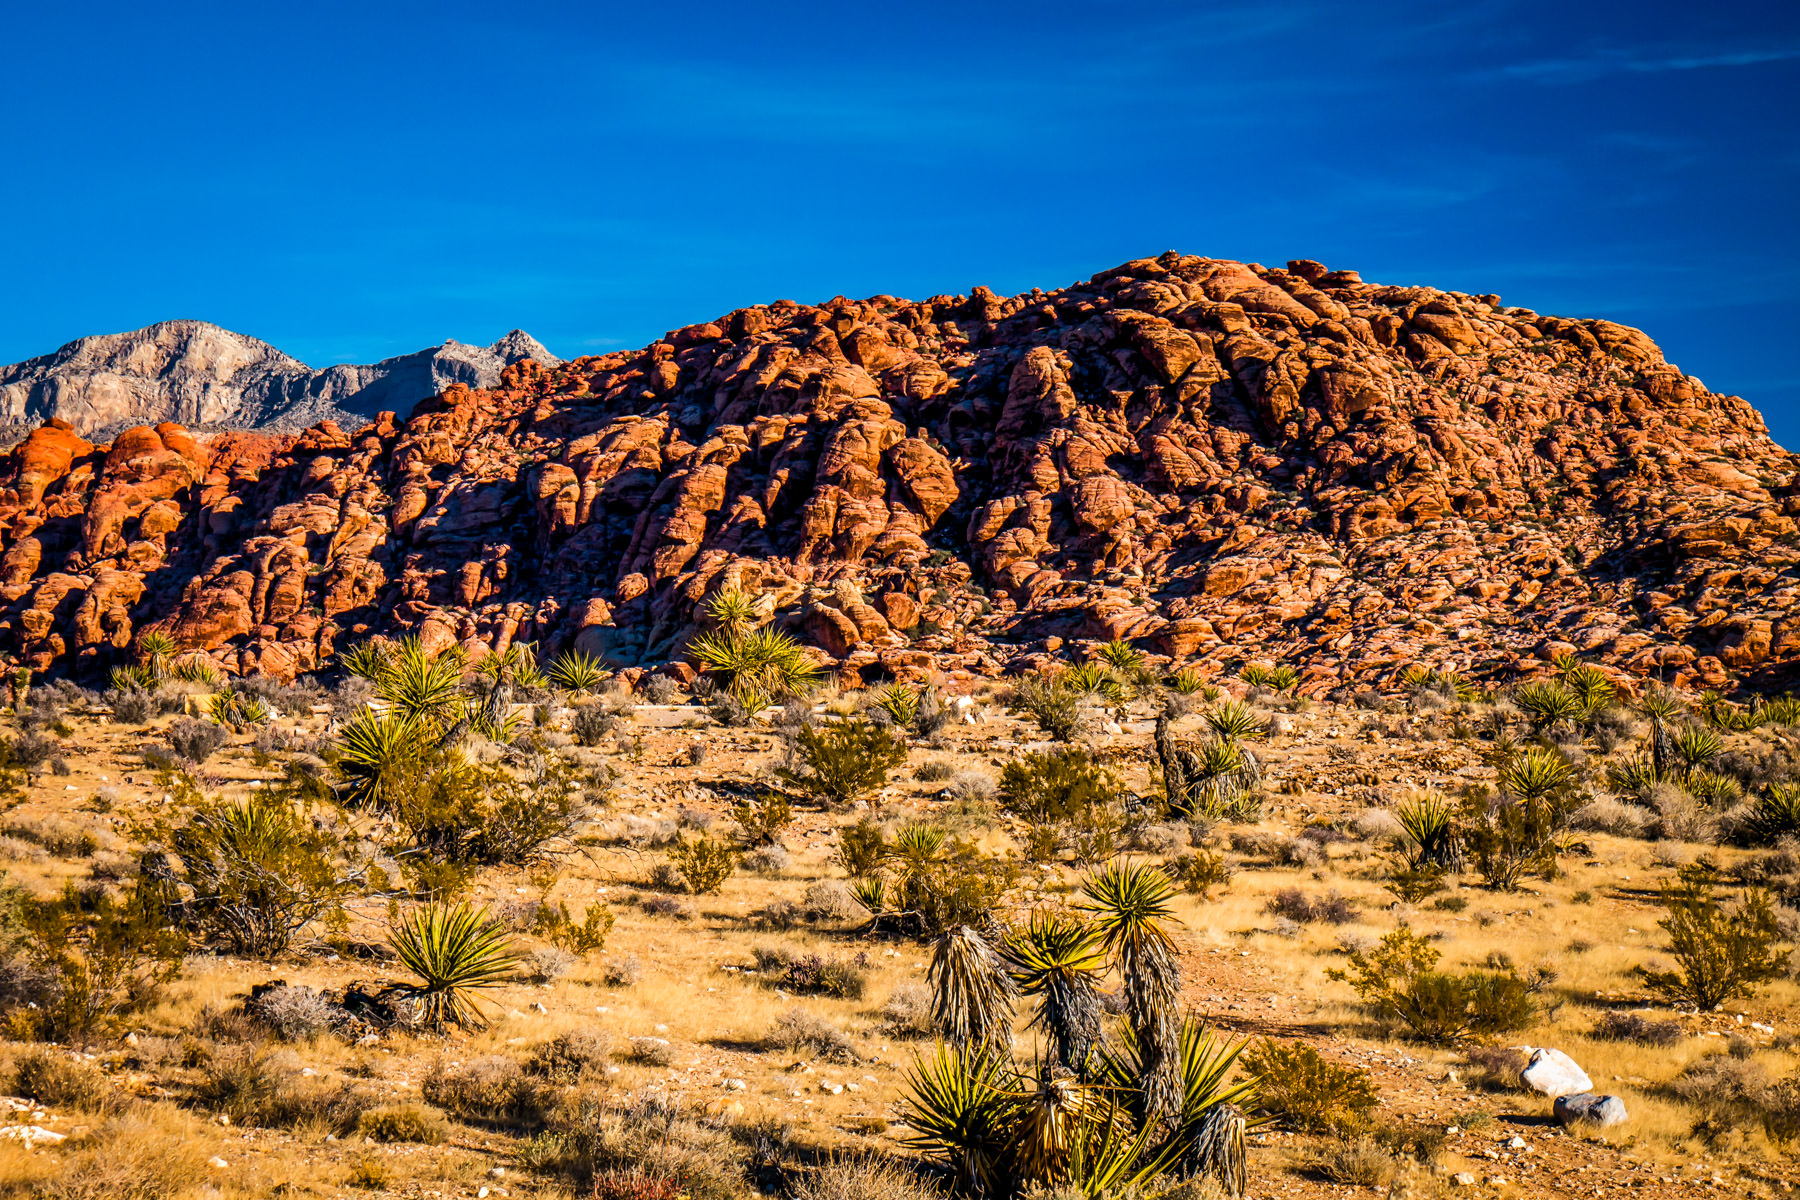 Some of the namesake rocks of Red Rock Canyon rise into the blue sky of the Nevada desert.